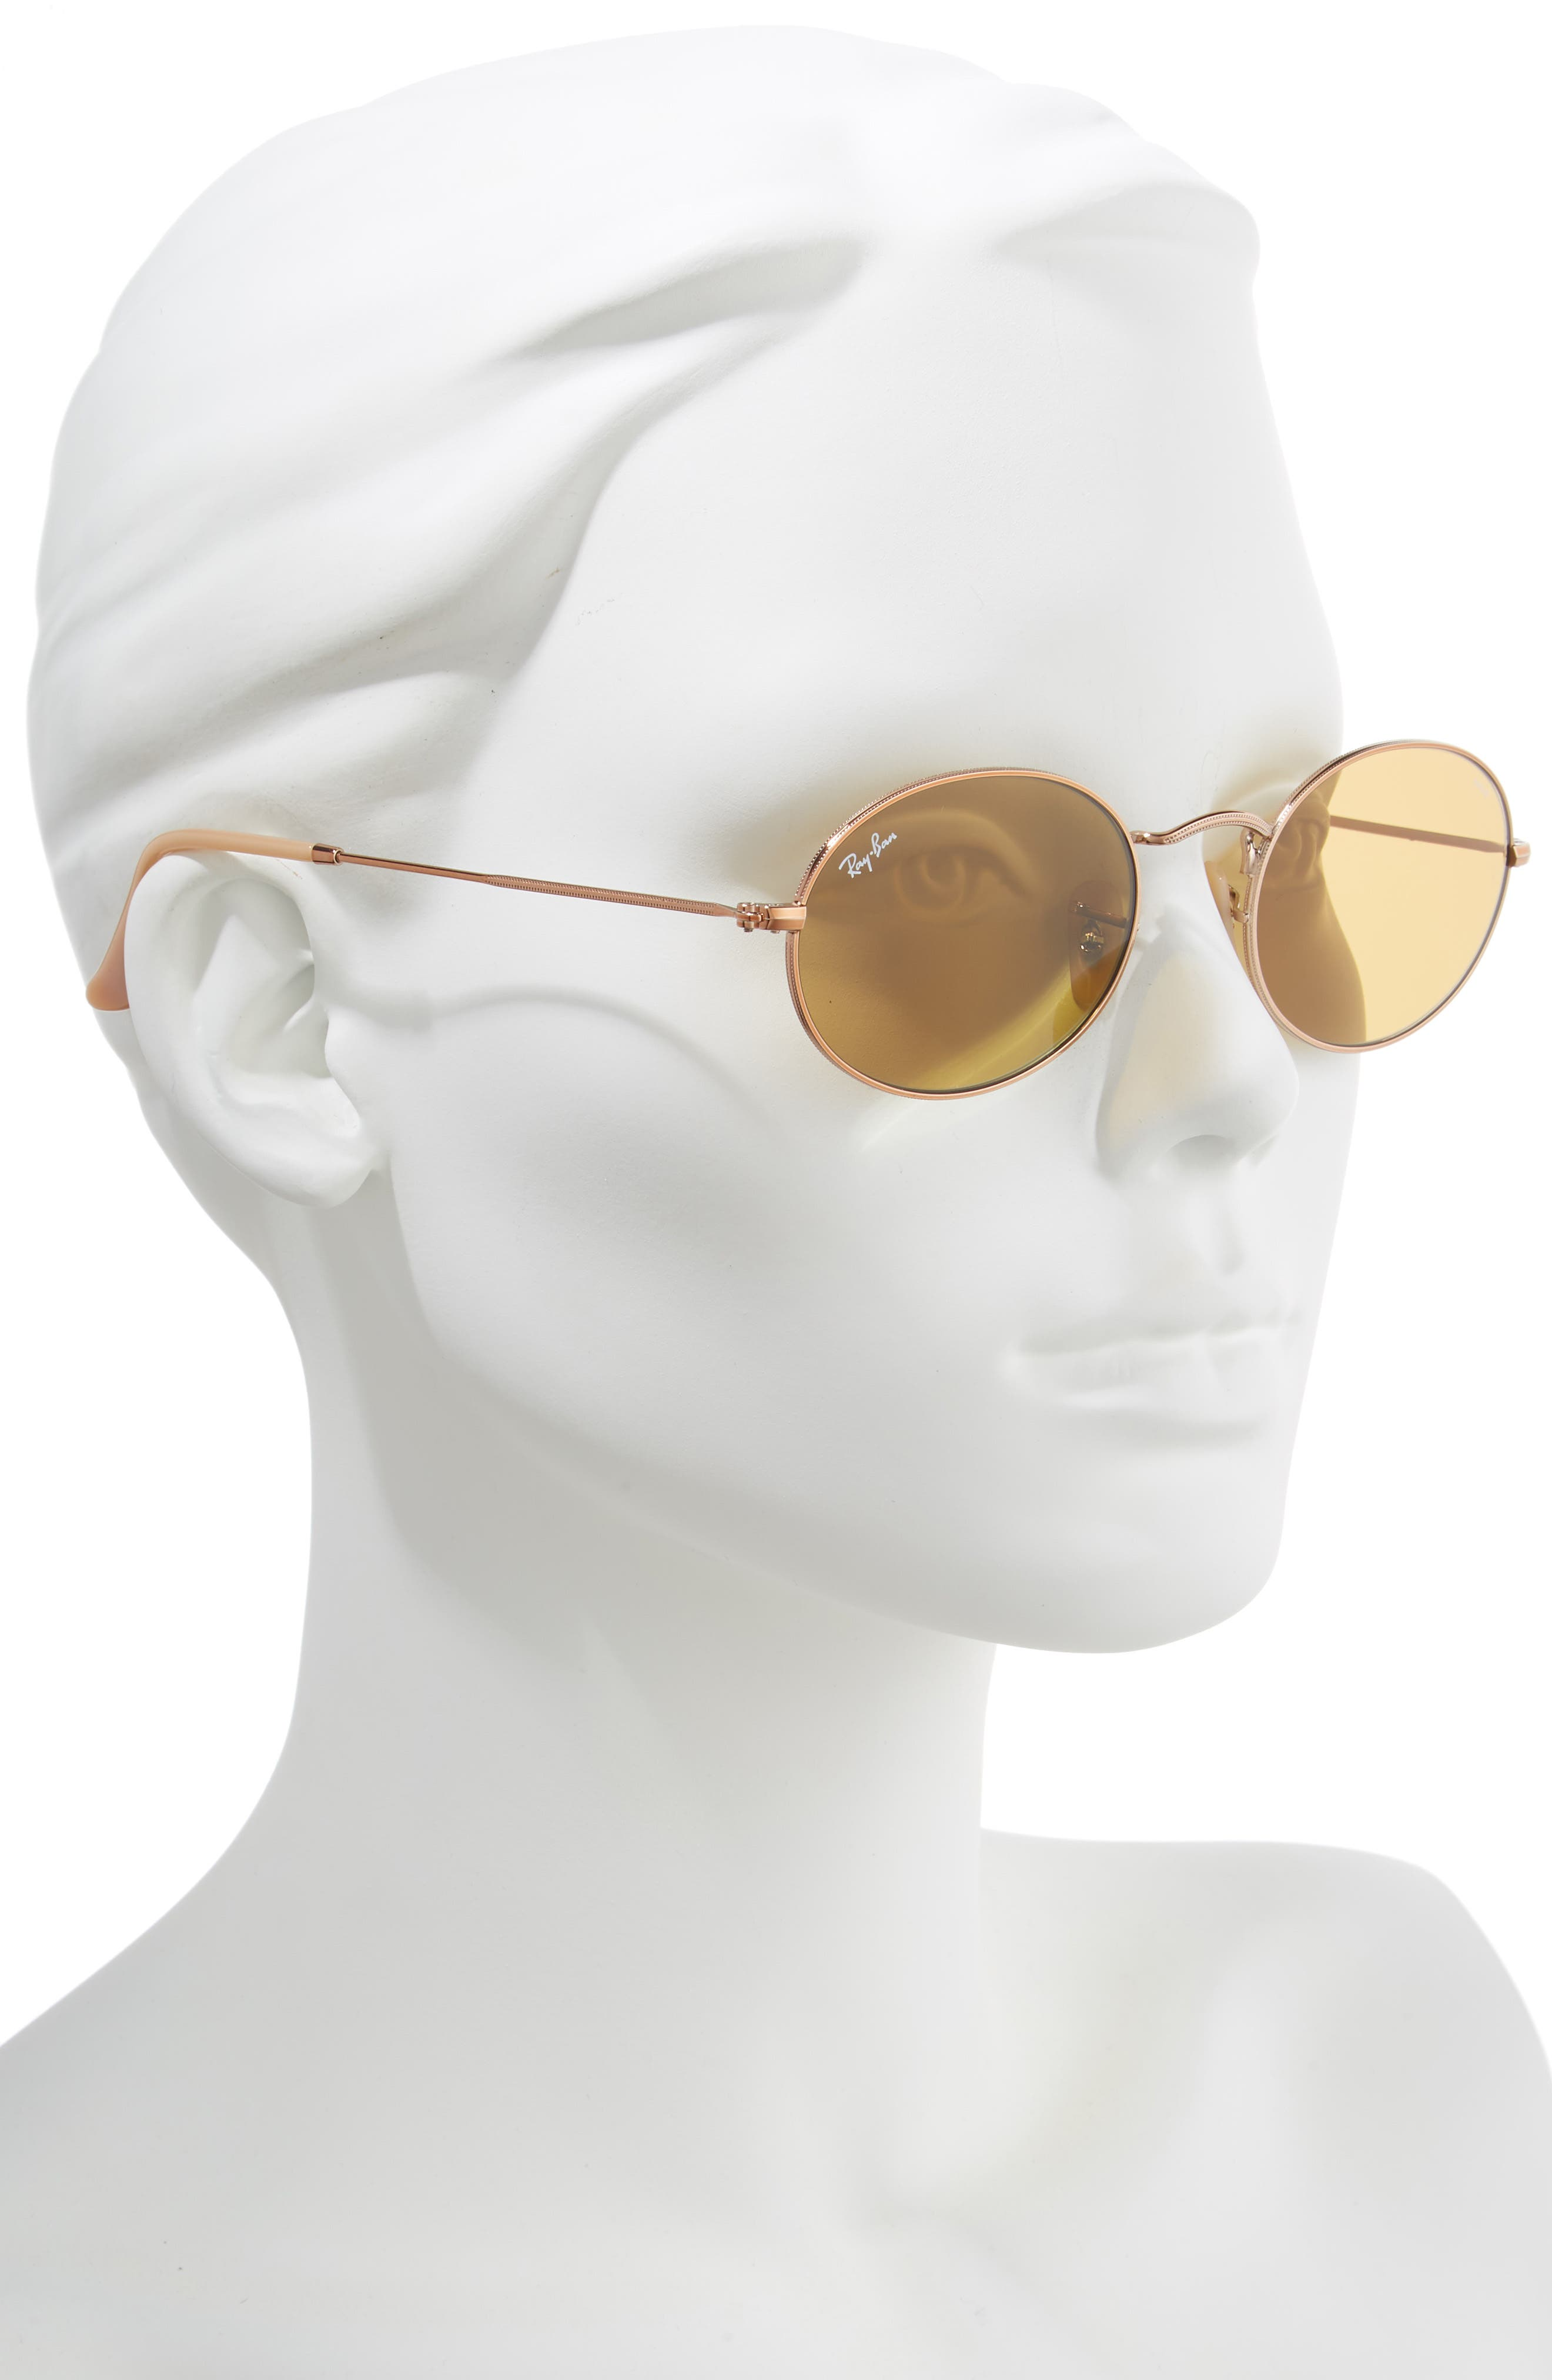 RAY-BAN,                             Evolve 54mm Polarized Oval Sunglasses,                             Alternate thumbnail 2, color,                             GOLD/ COPPER SOLID